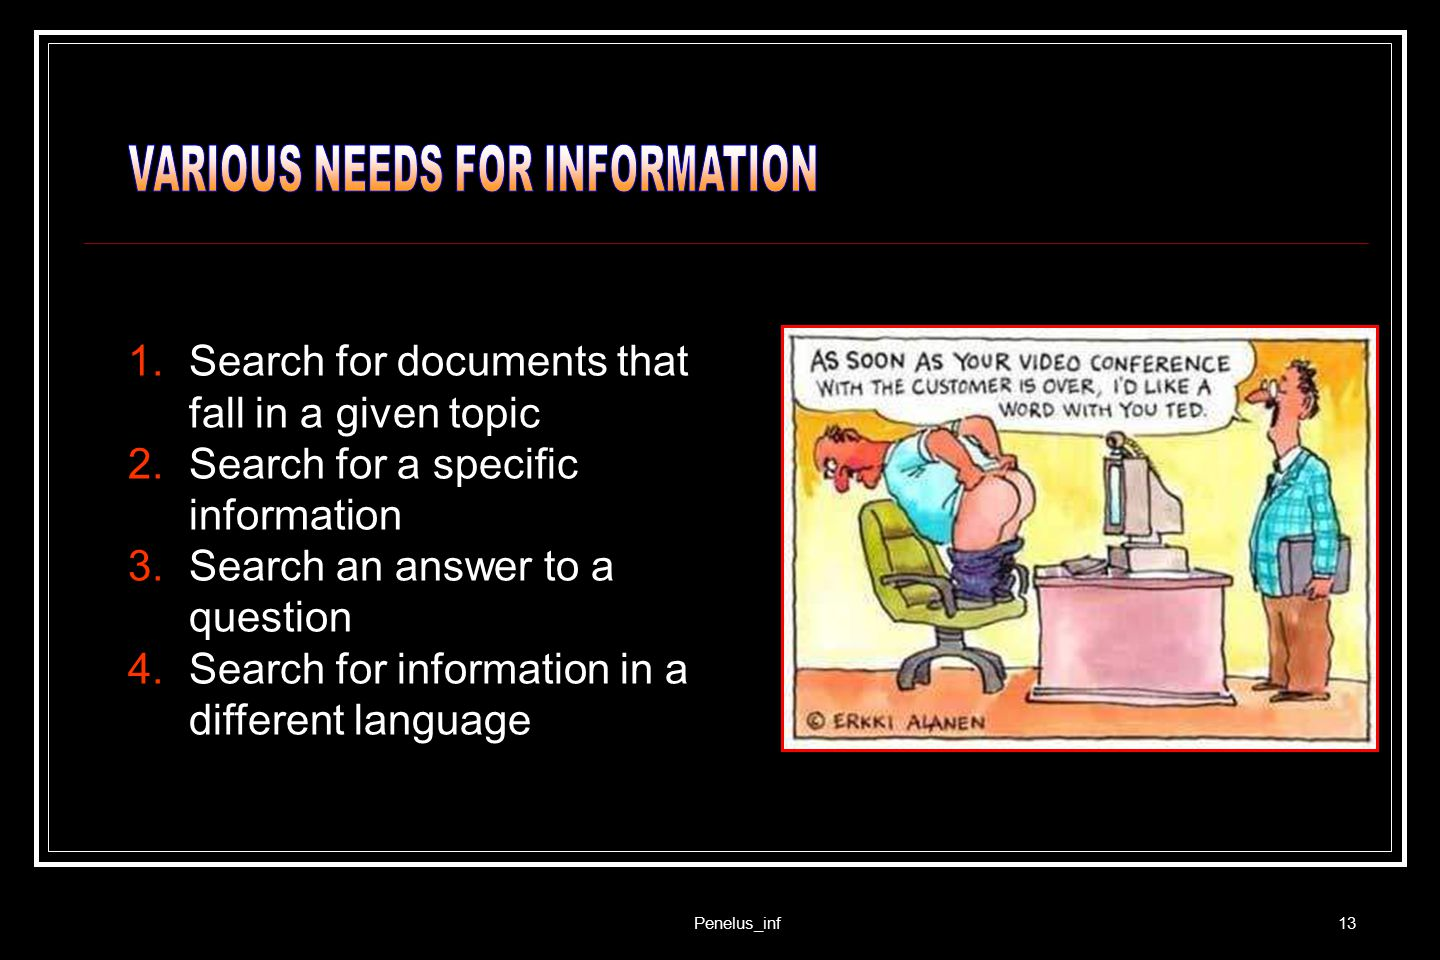 Penelus_inf13 1.Search for documents that fall in a given topic 2.Search for a specific information 3.Search an answer to a question 4.Search for info